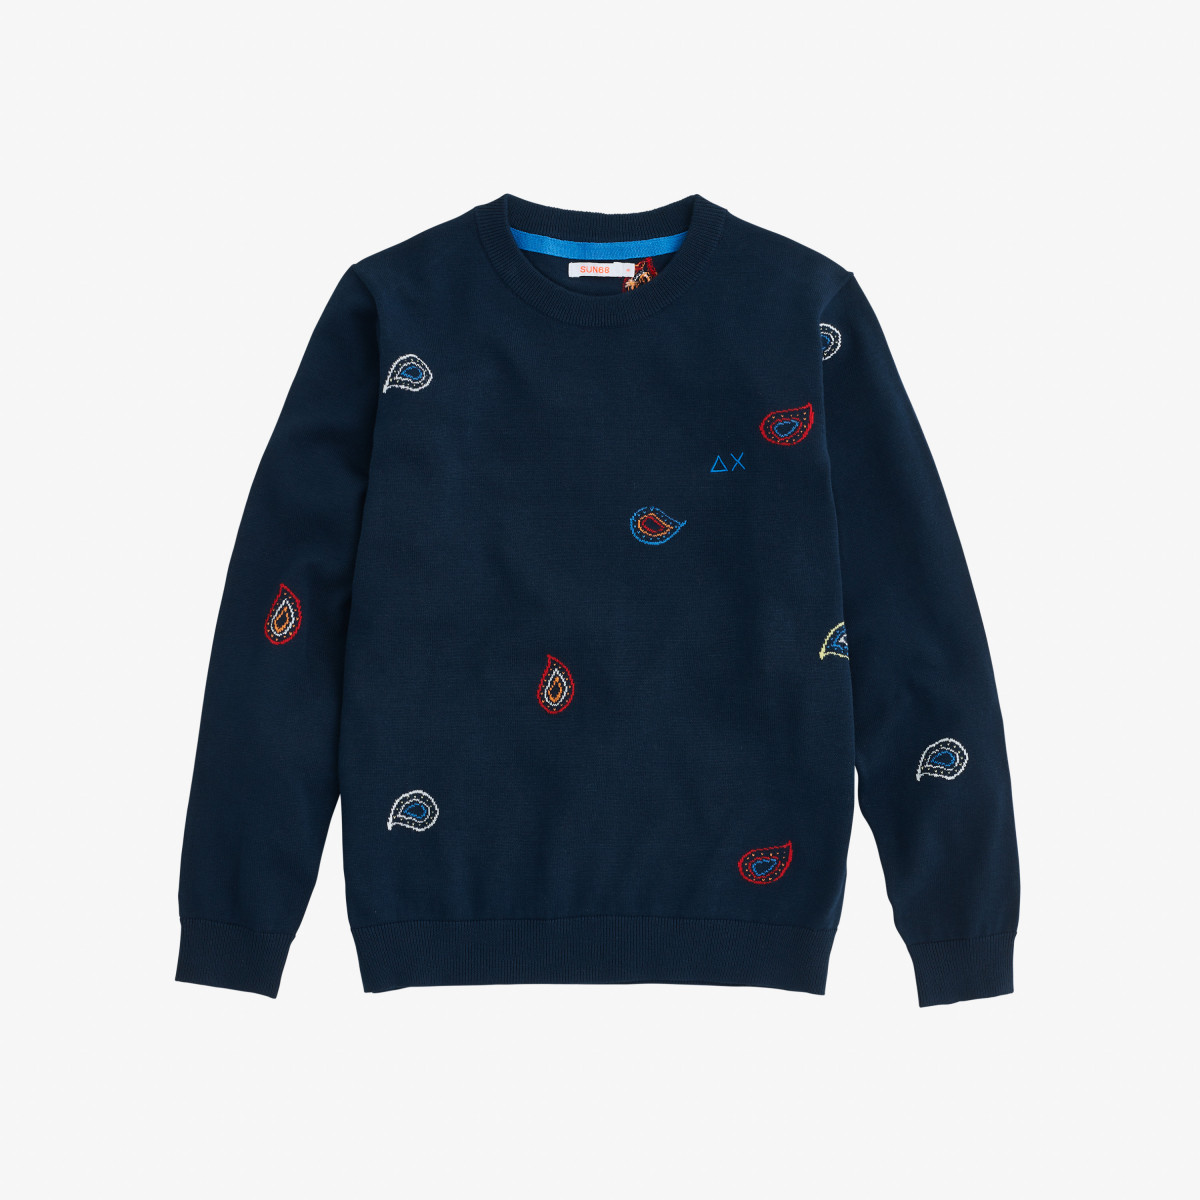 BOY'S ROUND FULL JACQUARD NAVY BLUE